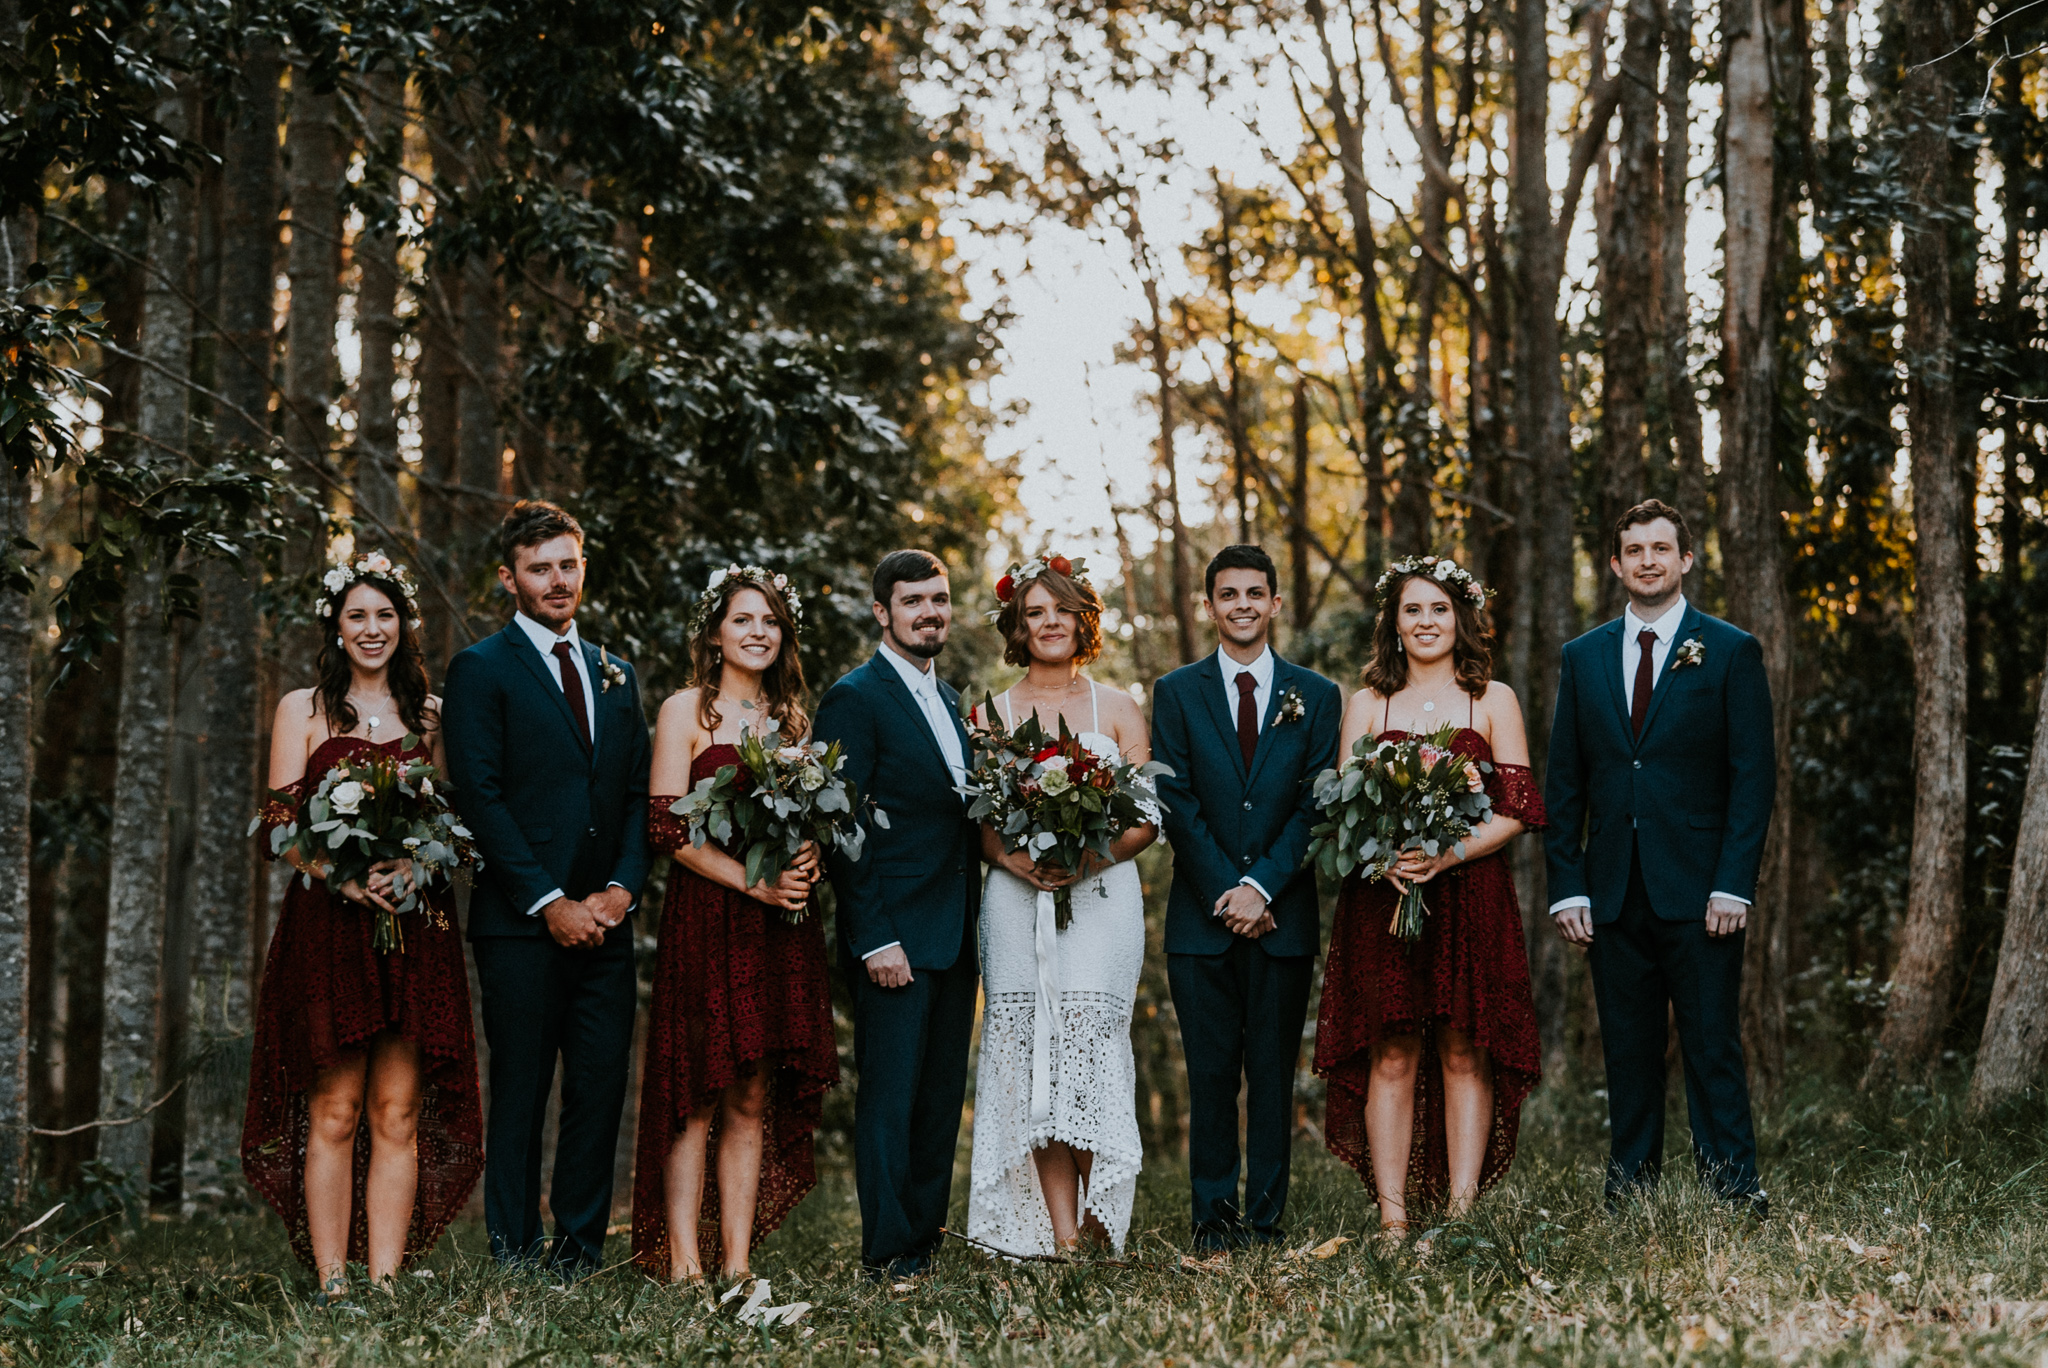 benjaminandrew-wedding.jpg